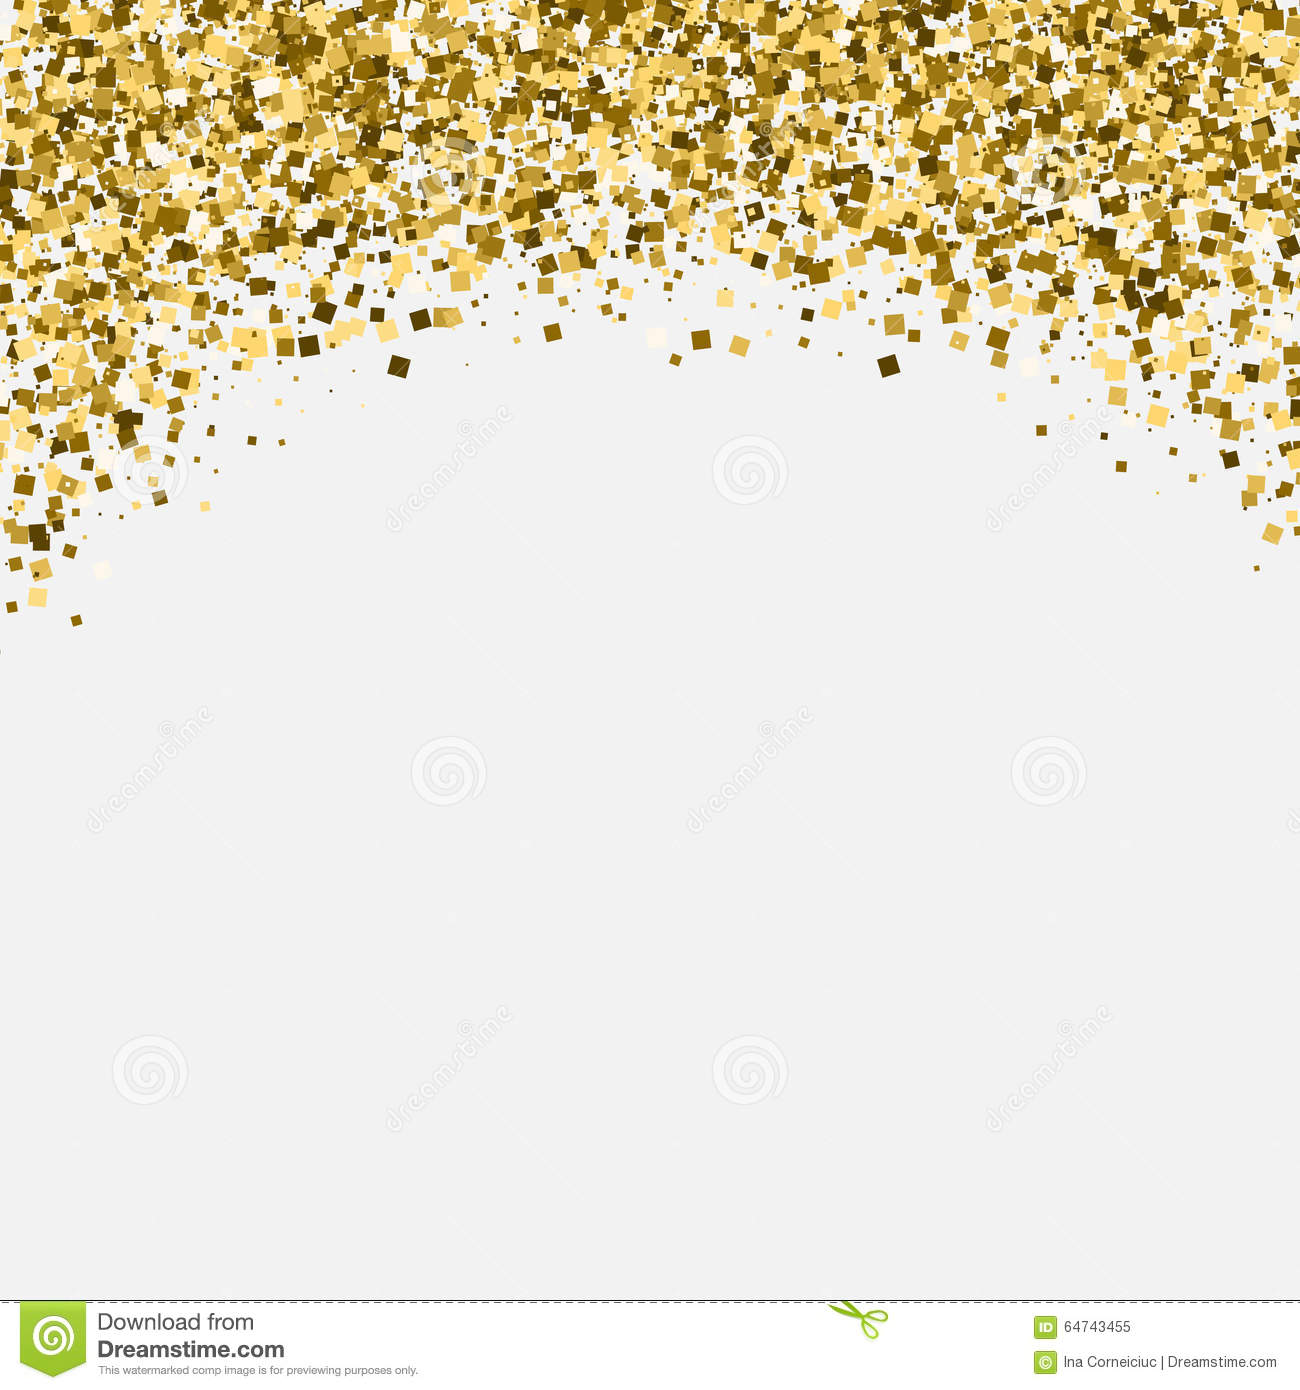 Gold Glitter Shimmery Heading Invitation Card Or Stock